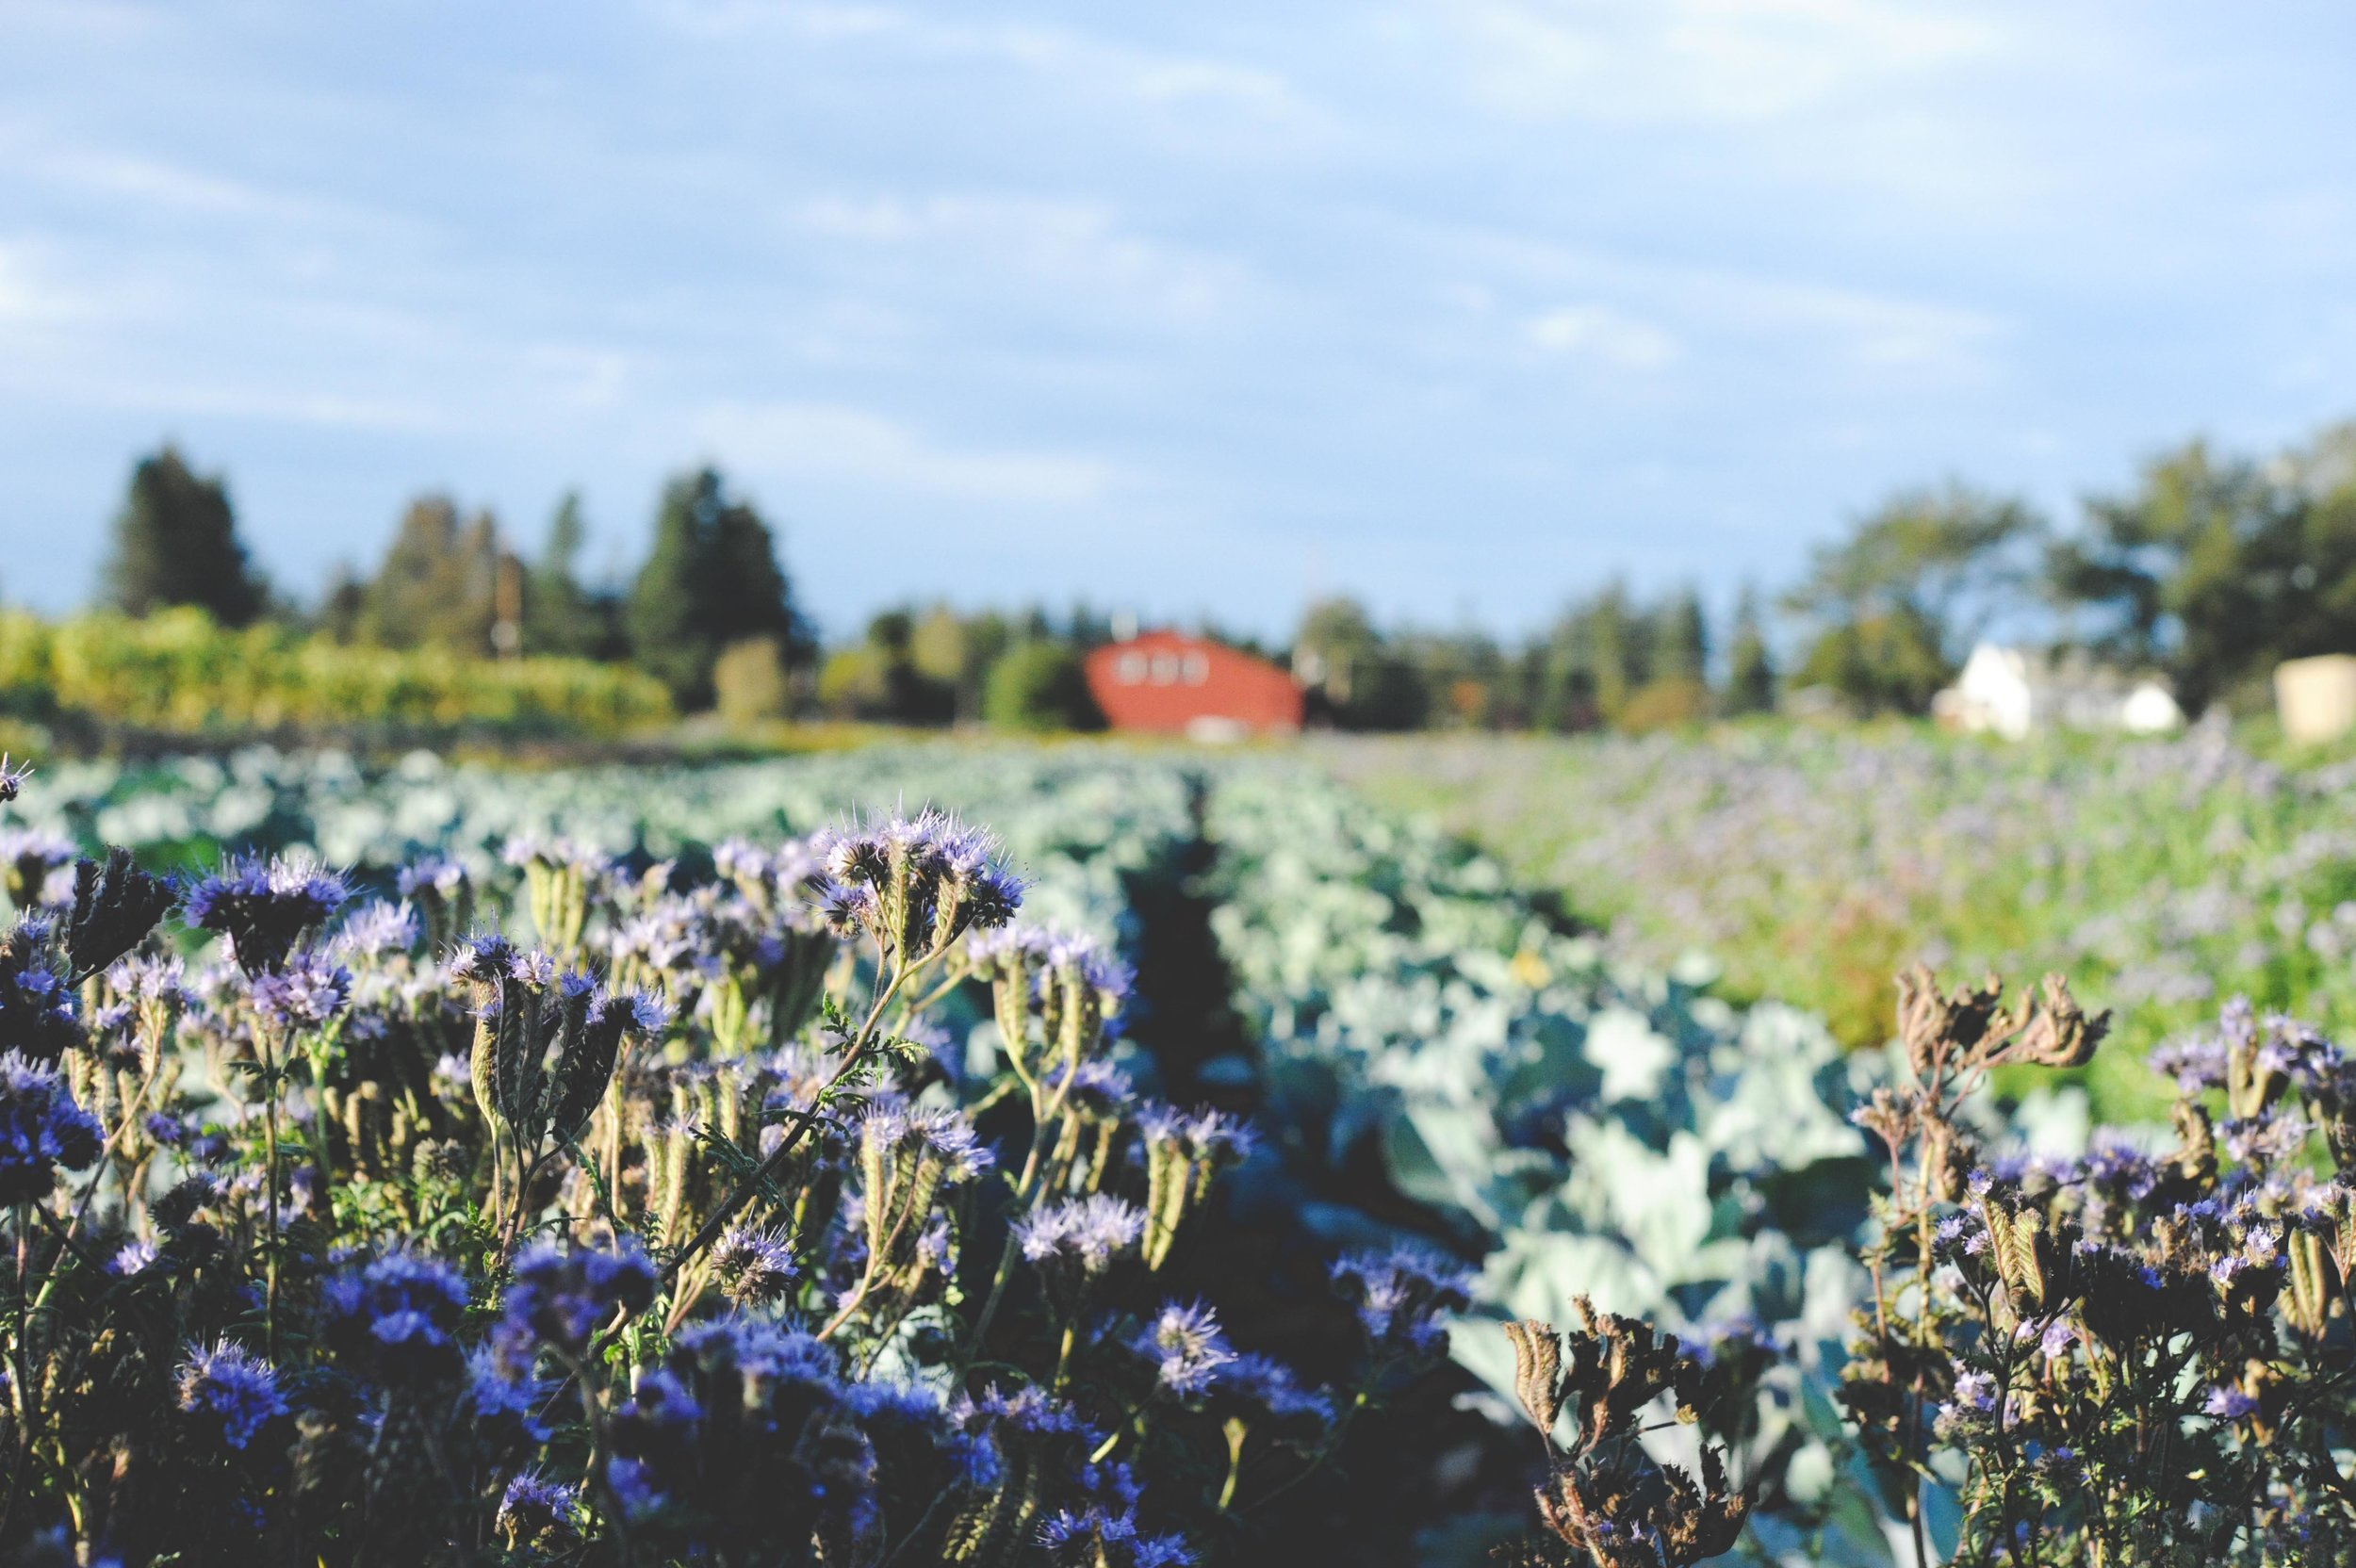 Phacelia tanacetifolia in front of the Brassica fields at the OSA test farm.